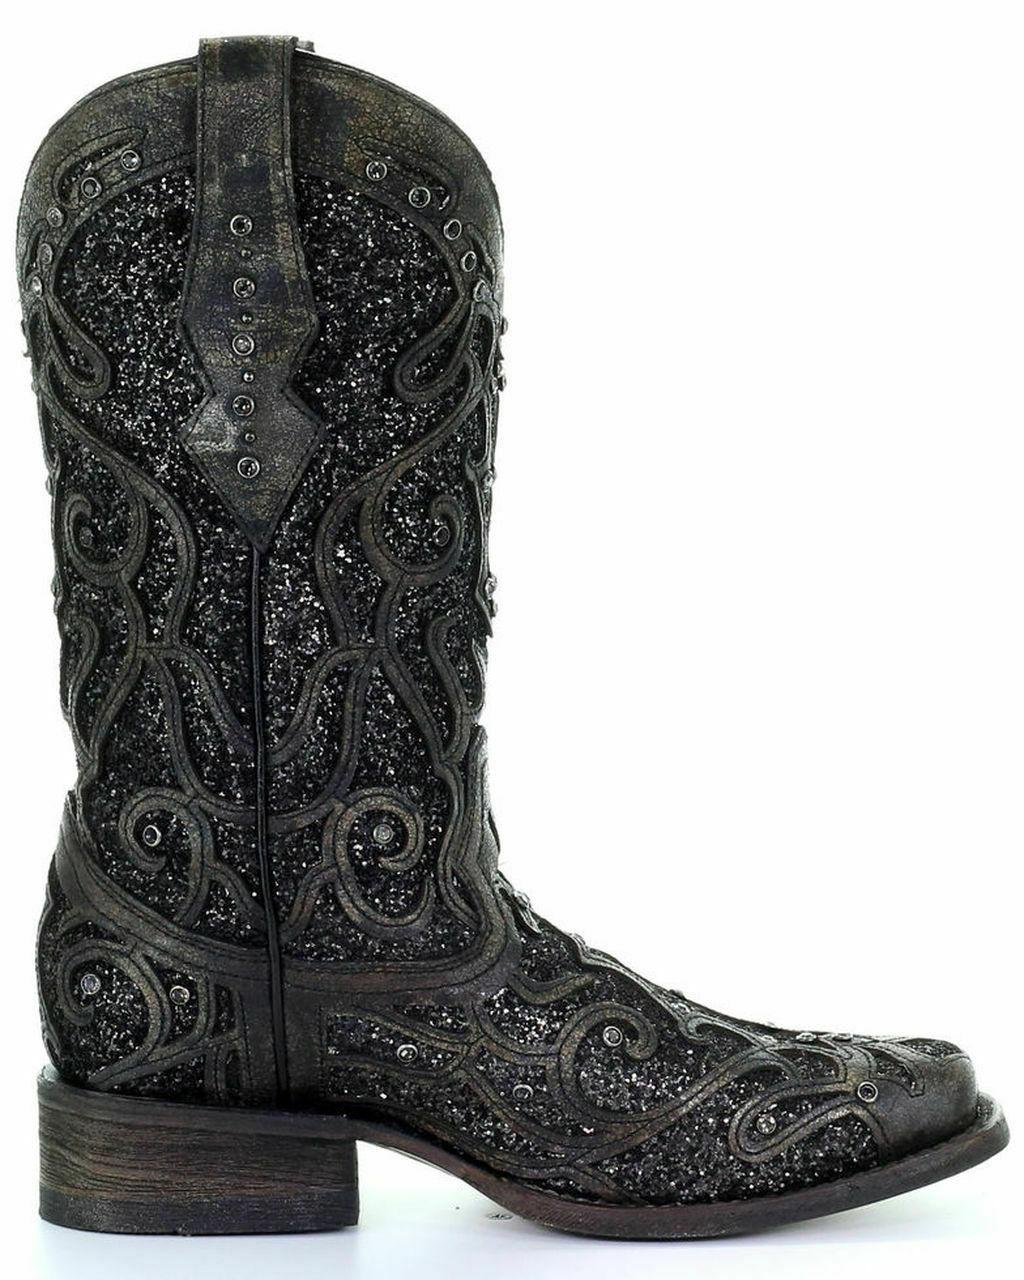 Overlay Black Glitter Western Boots